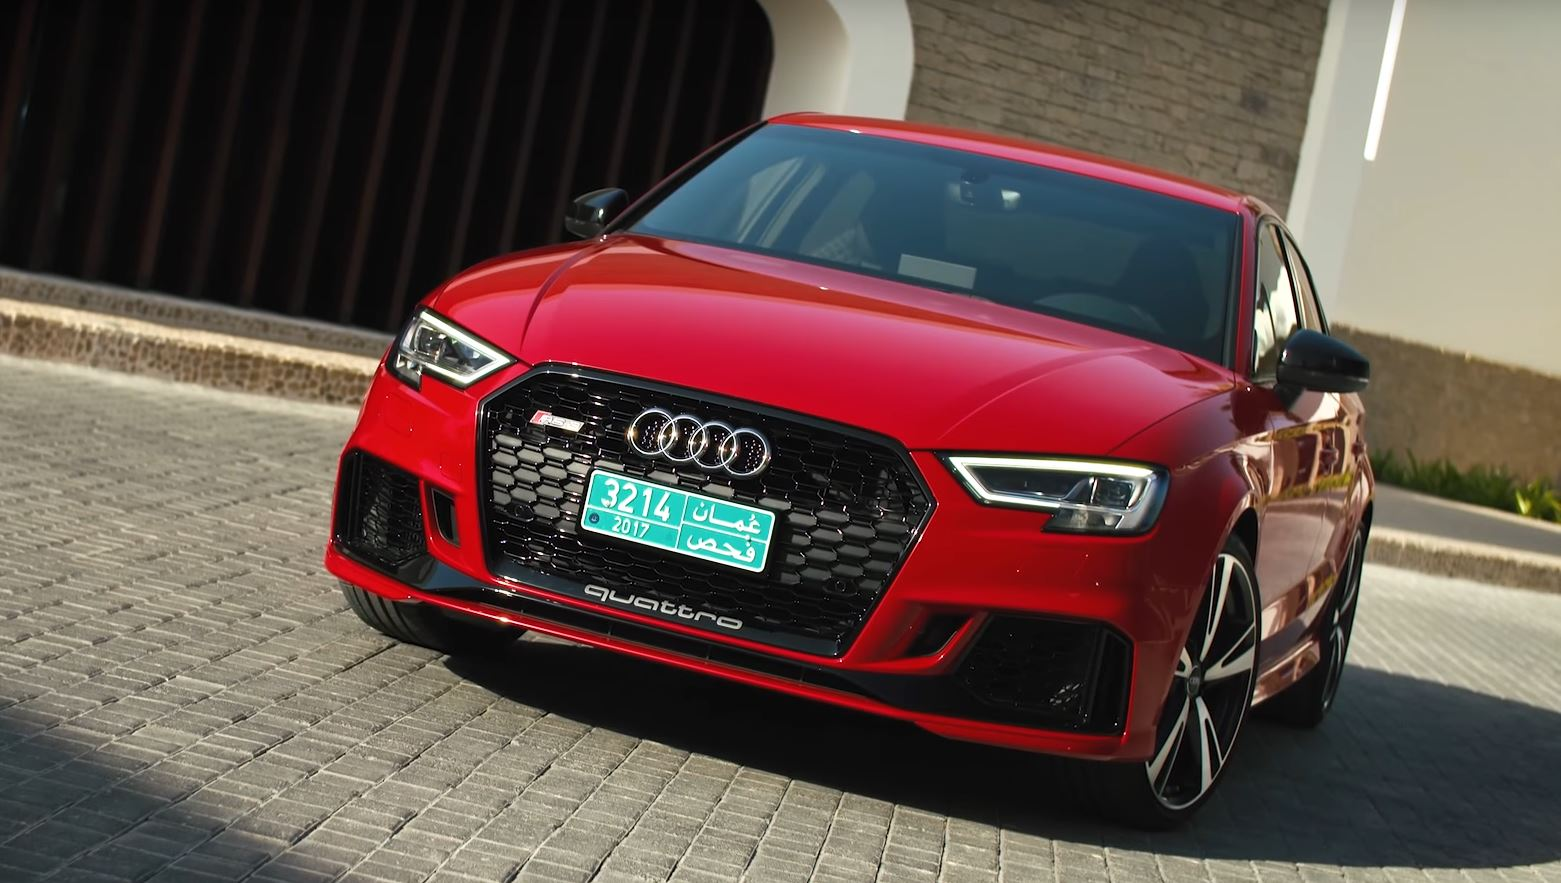 2018 audi rs3 sedan is a 2 5l turbo practical rocket says. Black Bedroom Furniture Sets. Home Design Ideas